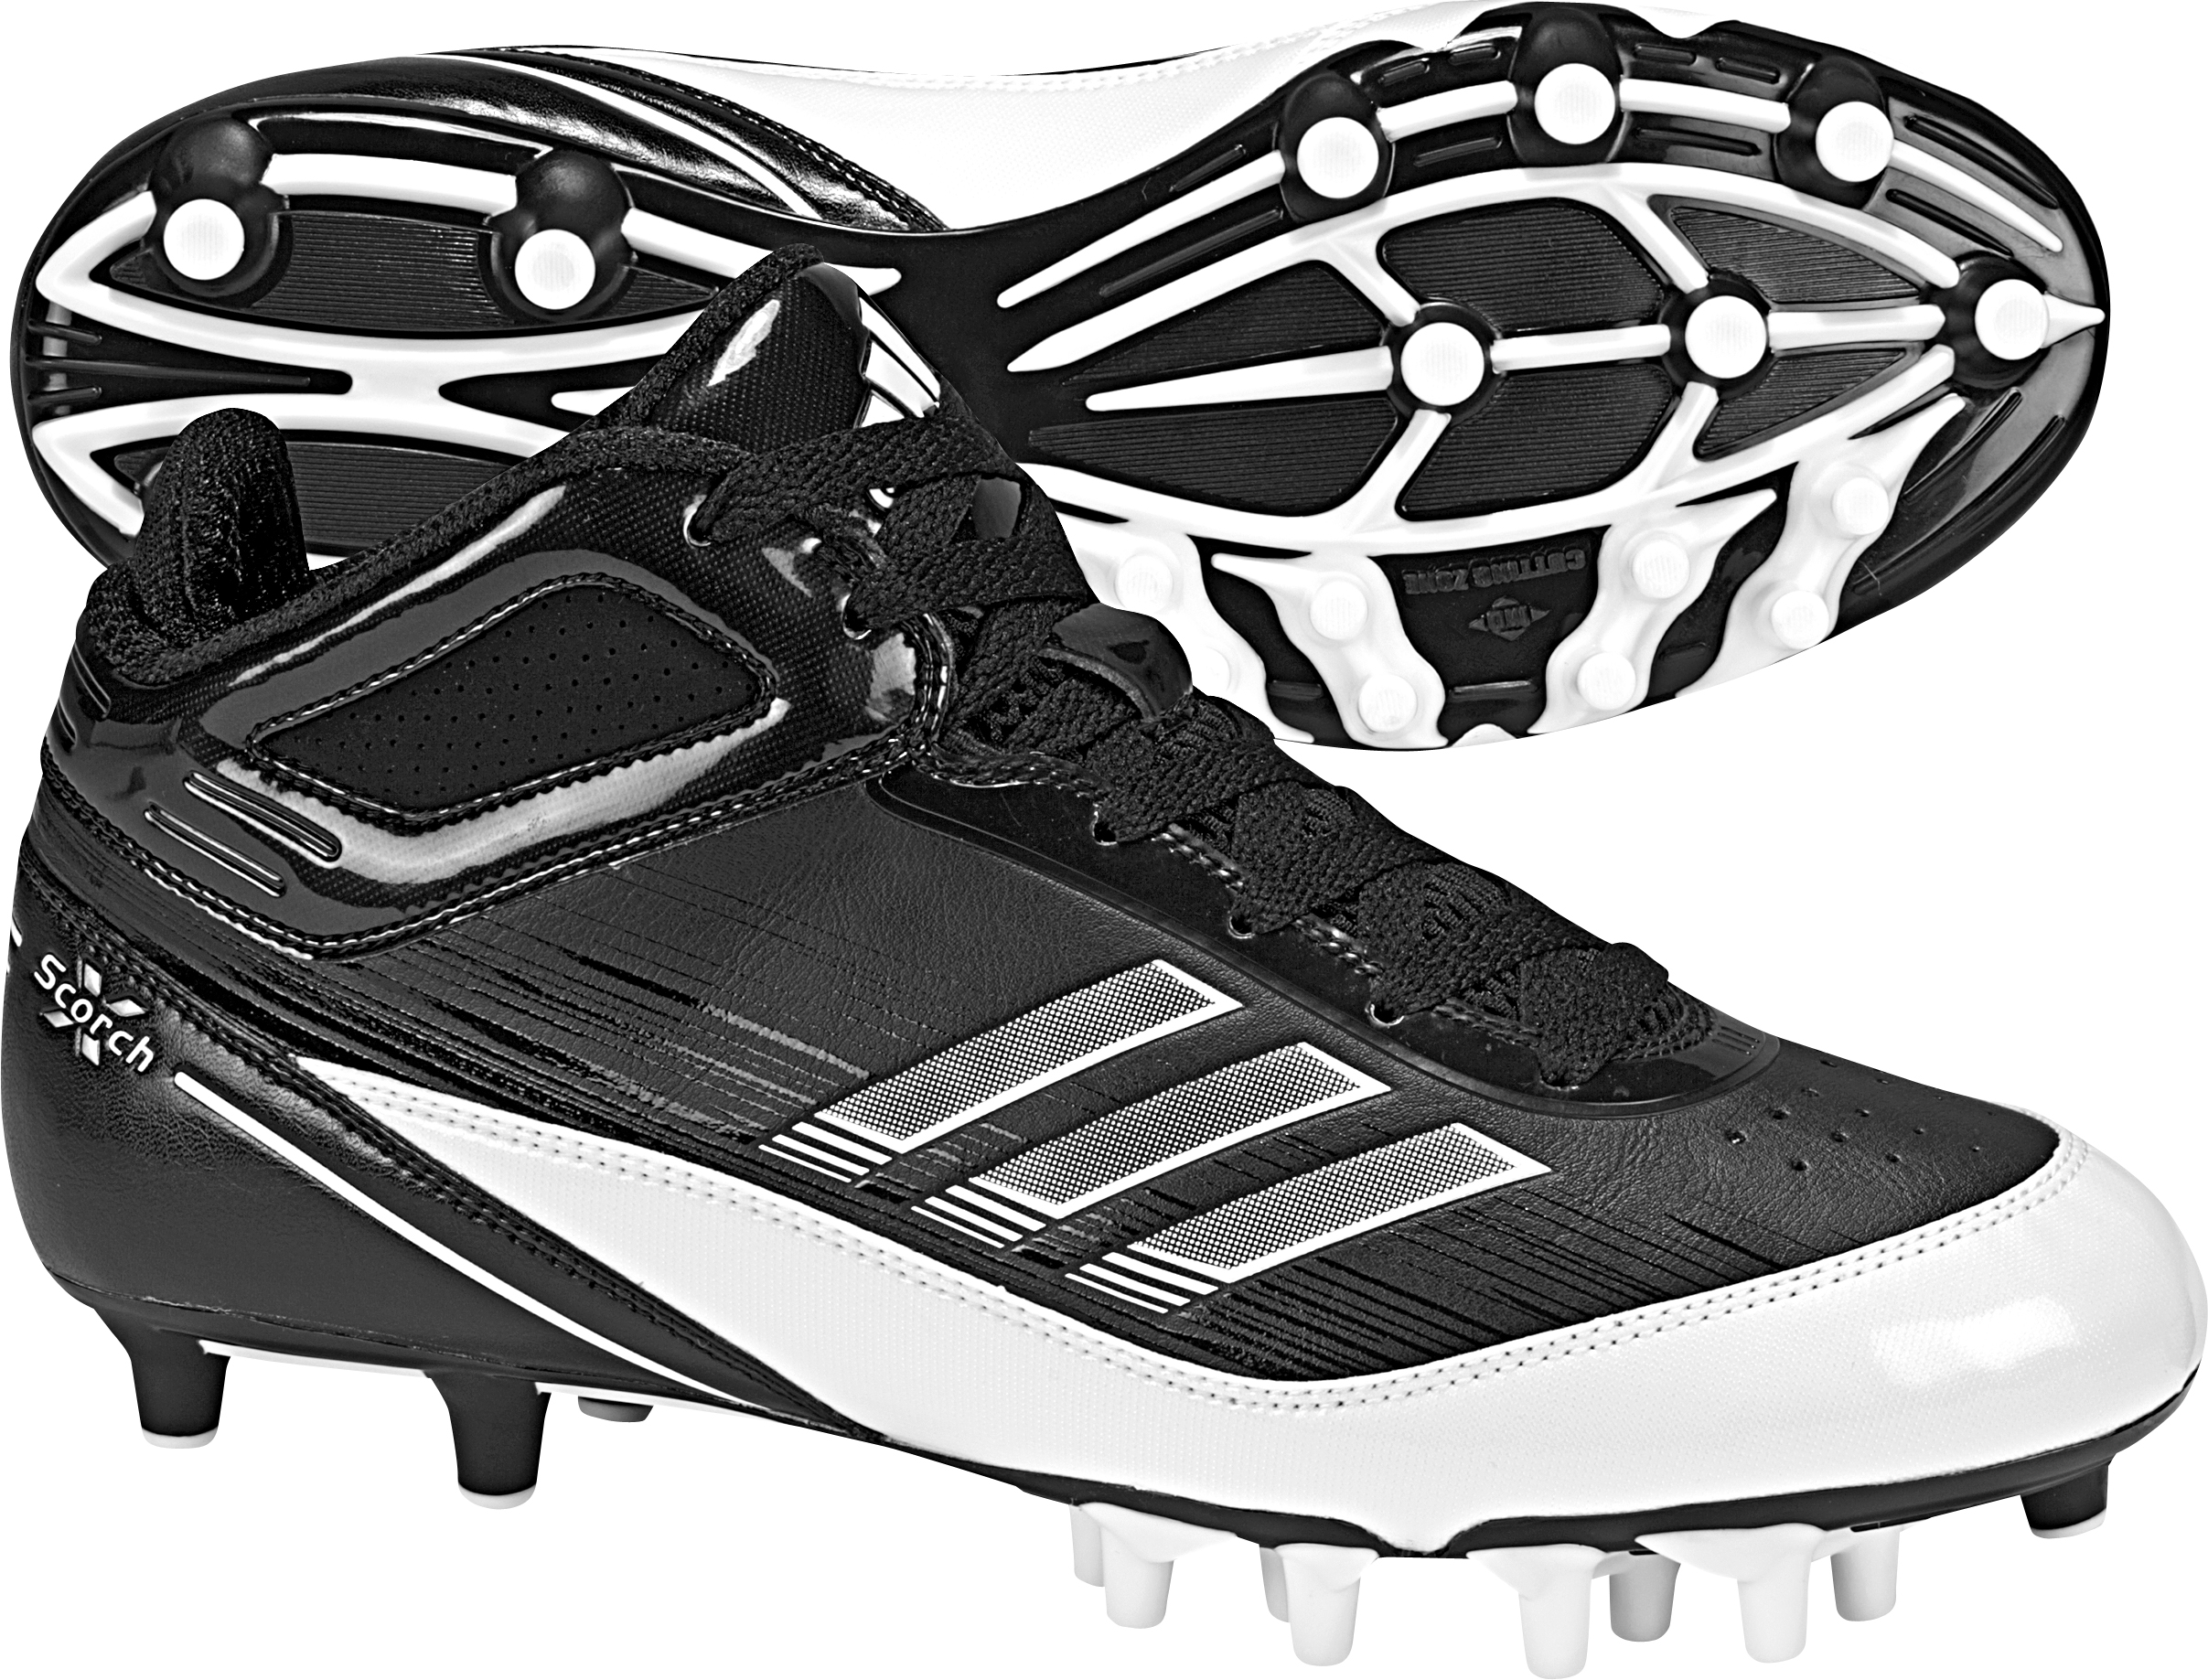 2414x1837 Adidas Men's Scorch X Superfly Mid Football Cleat